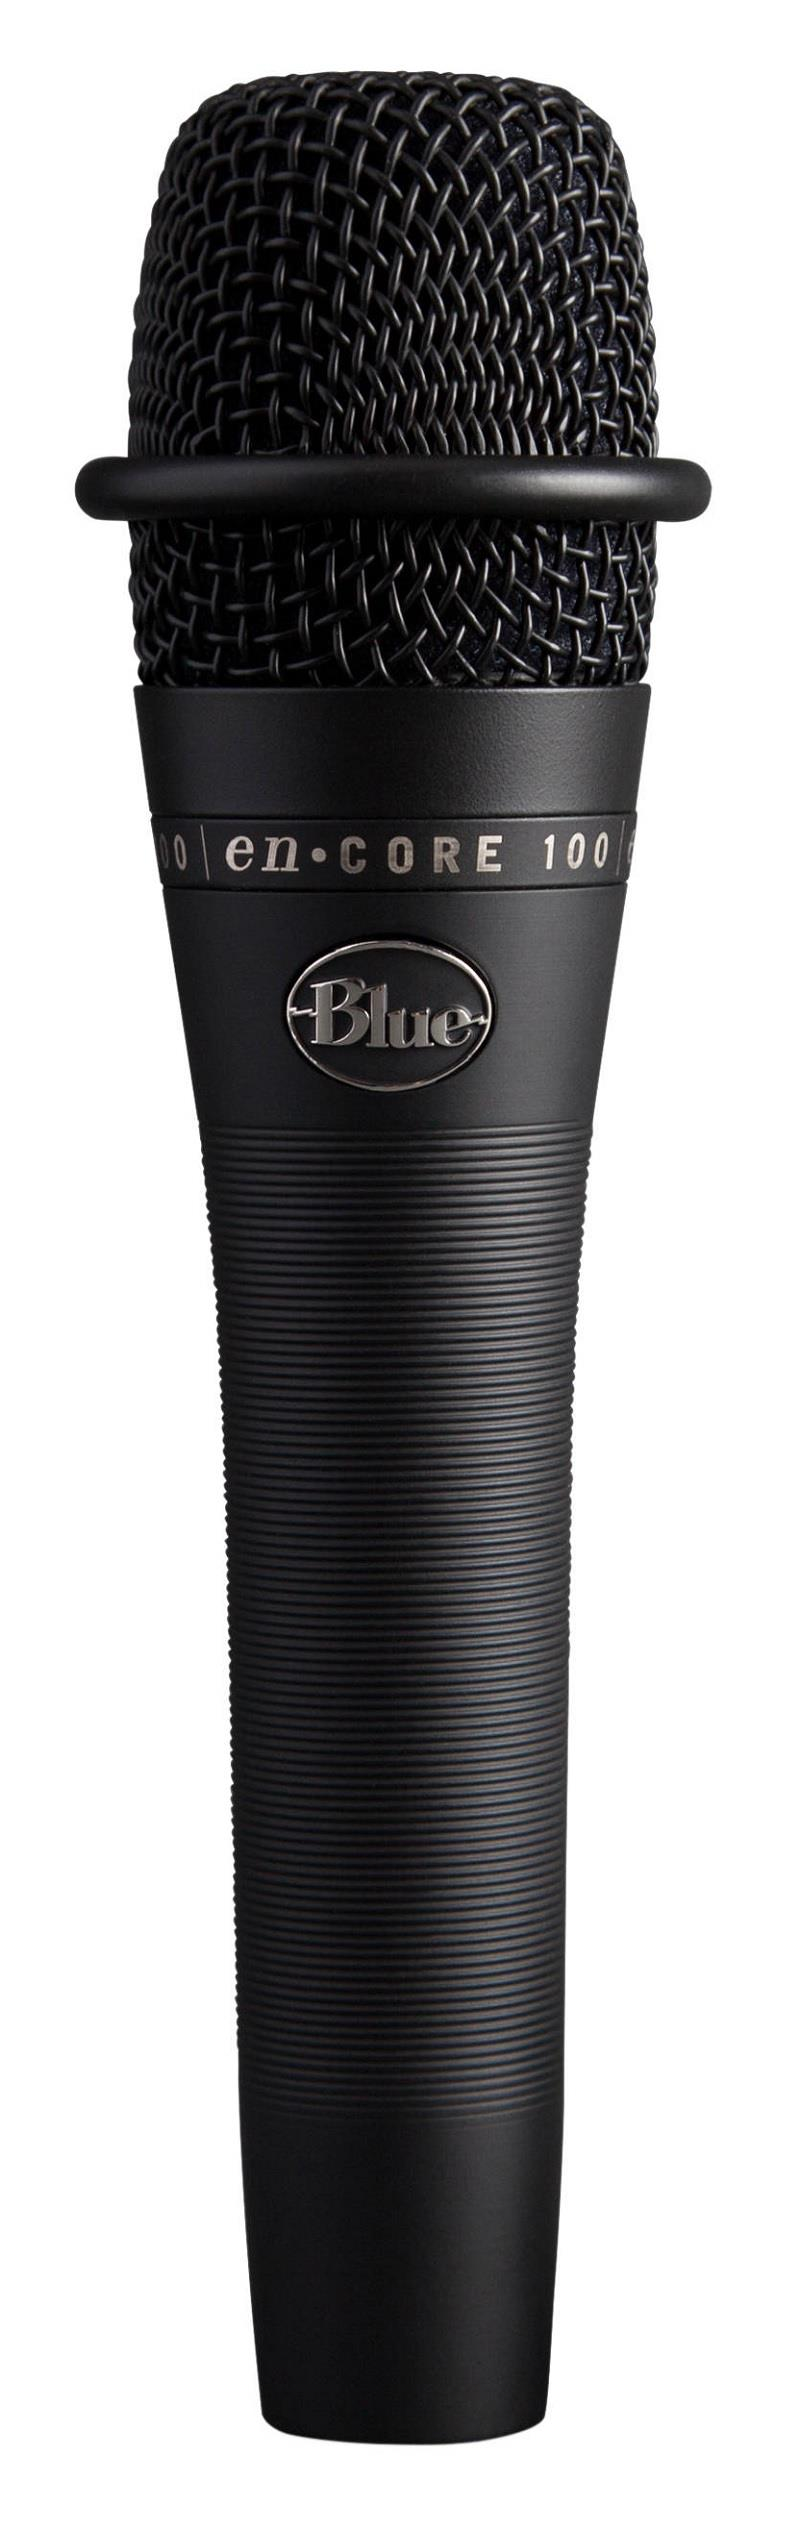 Blue Microphones Encore 100 - Dynamic Handheld Vocal Microphone